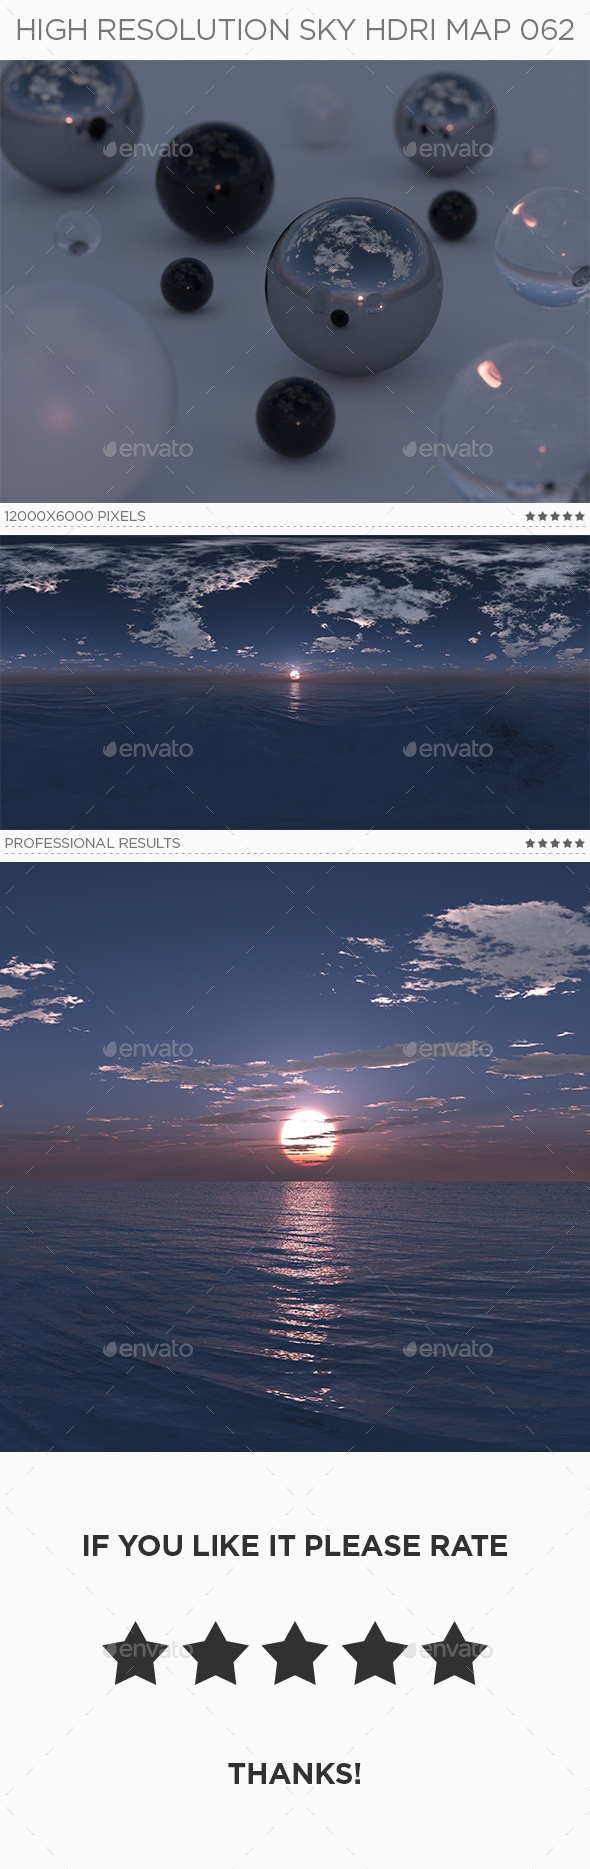 High Resolution Sky HDRi Map 062 - 3DOcean Item for Sale